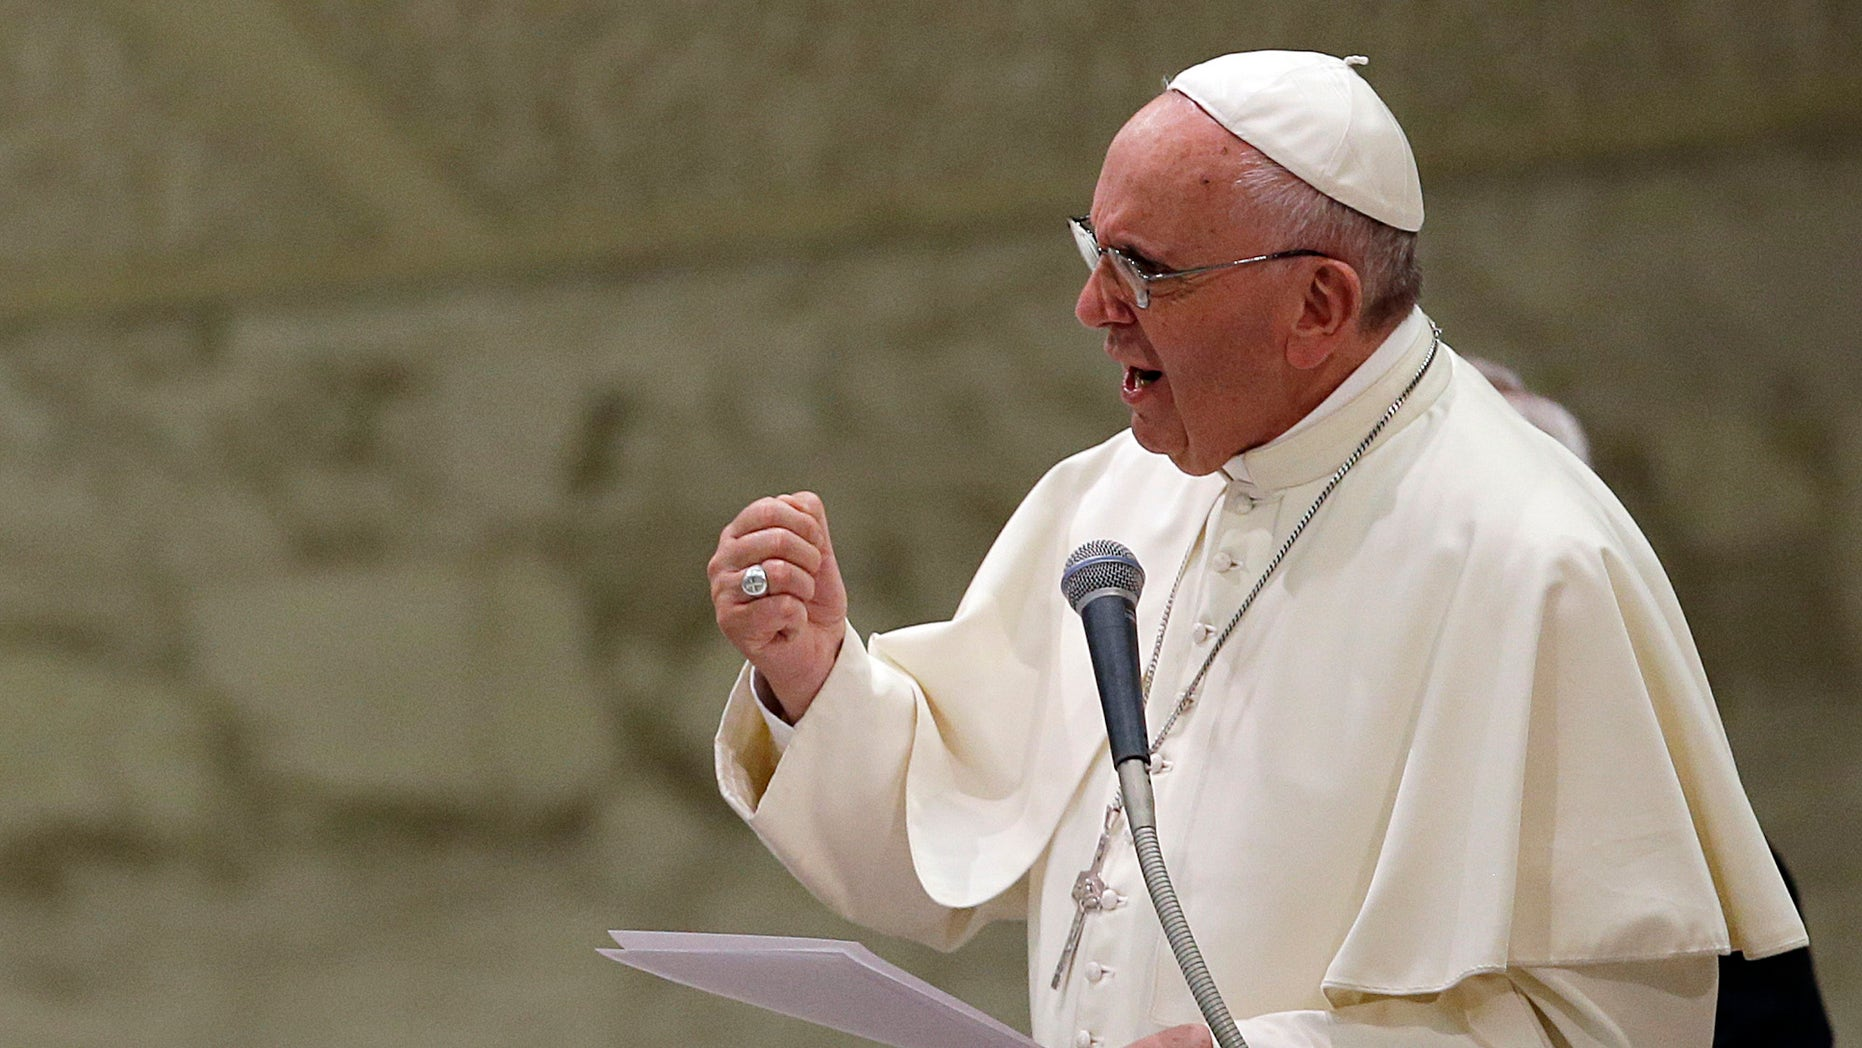 Pope Francis delivers his message during an audience with faithful and employees of the Rome's Cooperative Credit Bank in the Paul VI hall at the Vatican, Saturday, Sept. 12, 2015. To some Republican presidential candidates, itâs better to be with the popular pope than against him. (AP Photo/Gregorio Borgia)